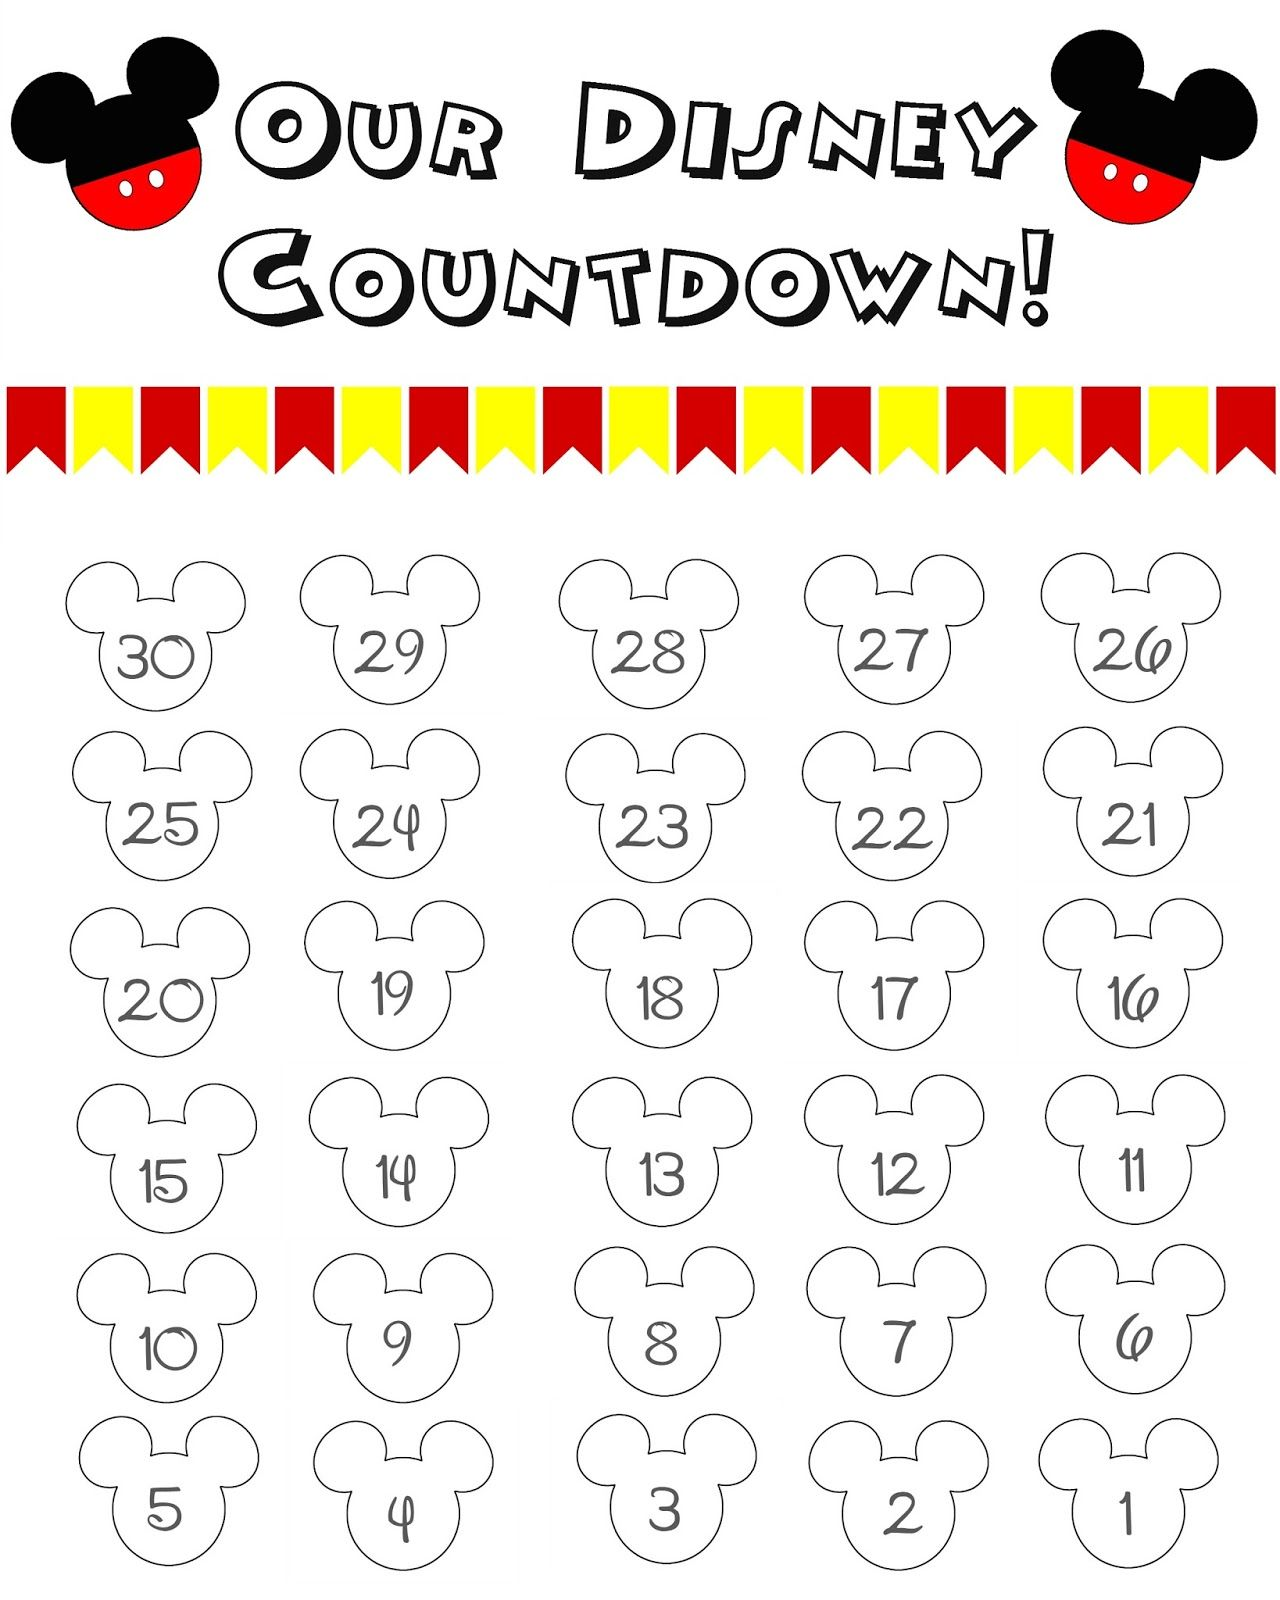 picture regarding Disney Countdown Calendar Printable referred to as Disney Earth Countdown Calendar - Totally free Printable The Momma